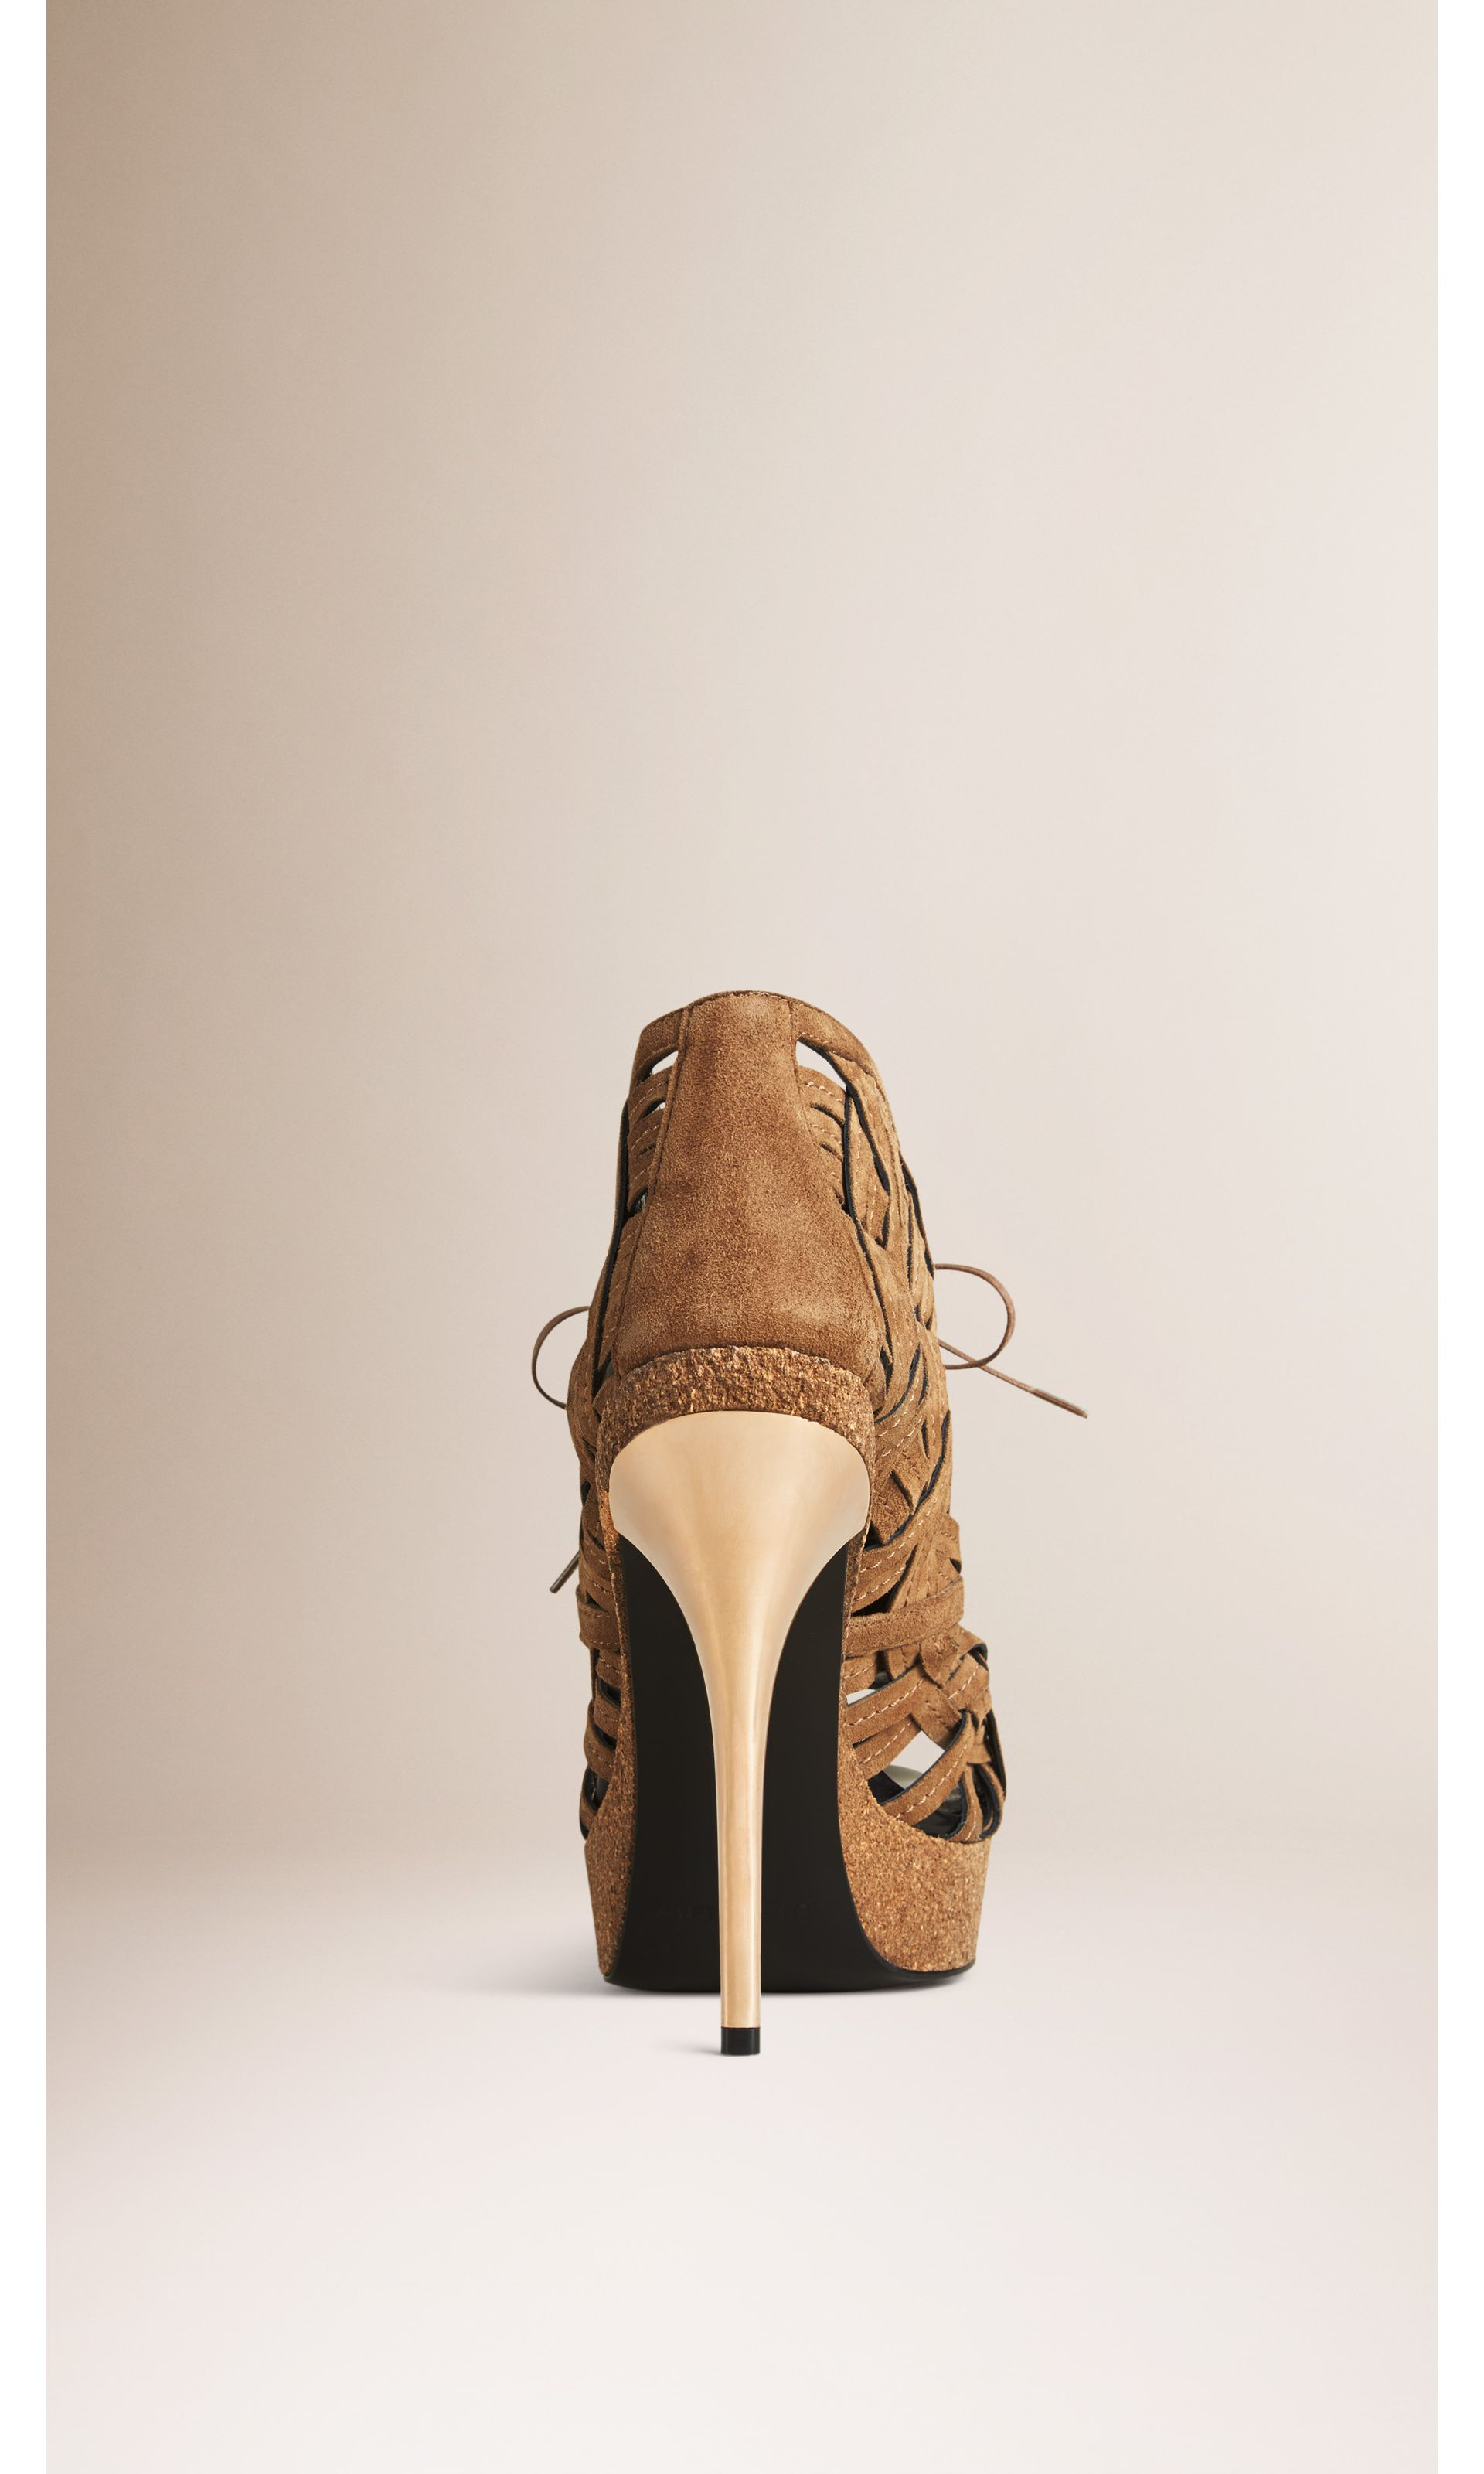 Woven Suede Ankle Boots in Walnut Brown - Women | Burberry United States - gallery image 1